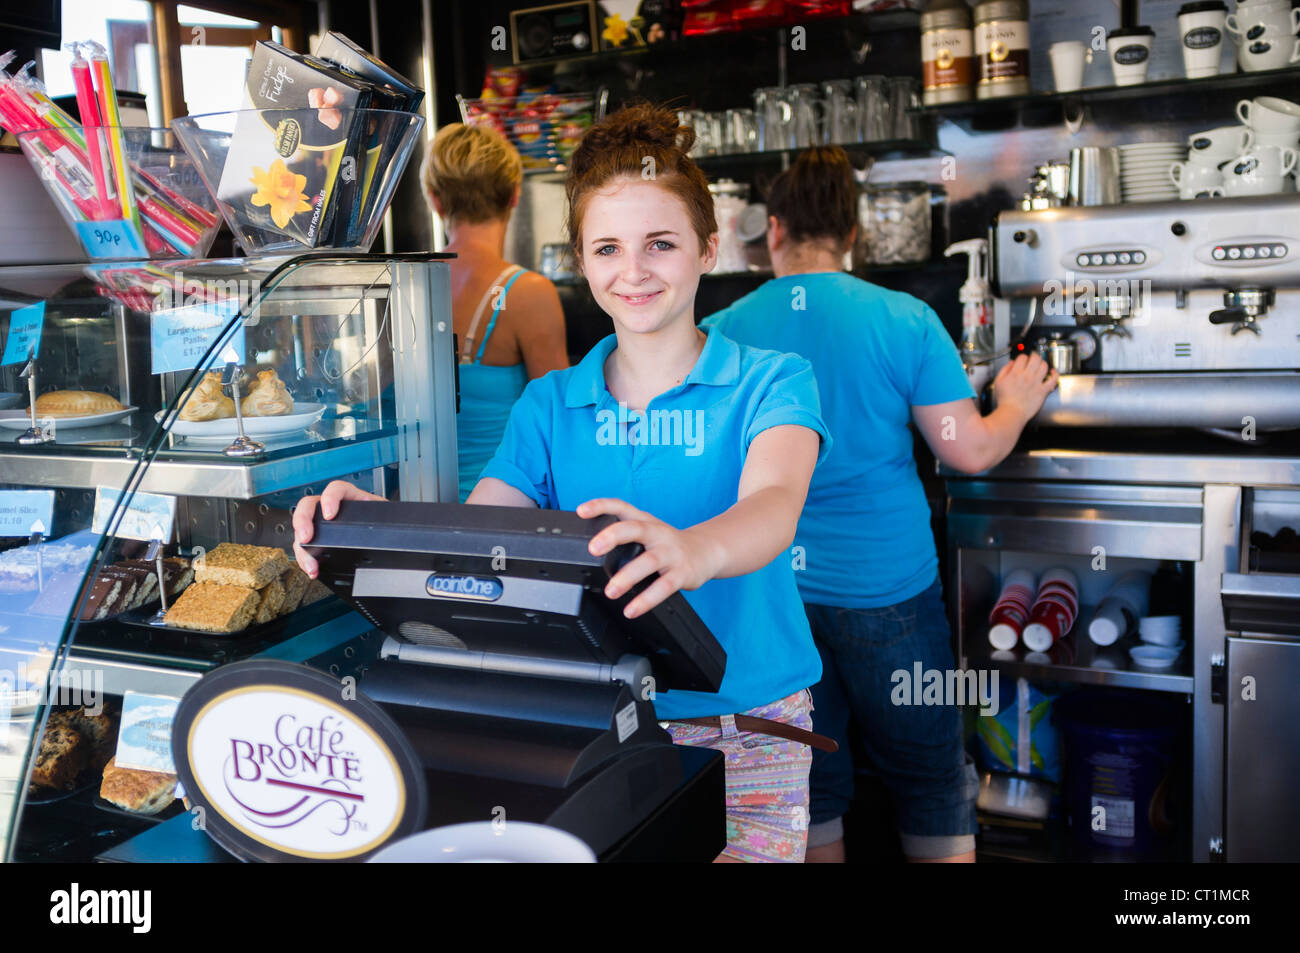 A Happy Smiling 14 Fourteen Year Old Girl Working In A Seaside Stock Photo Alamy